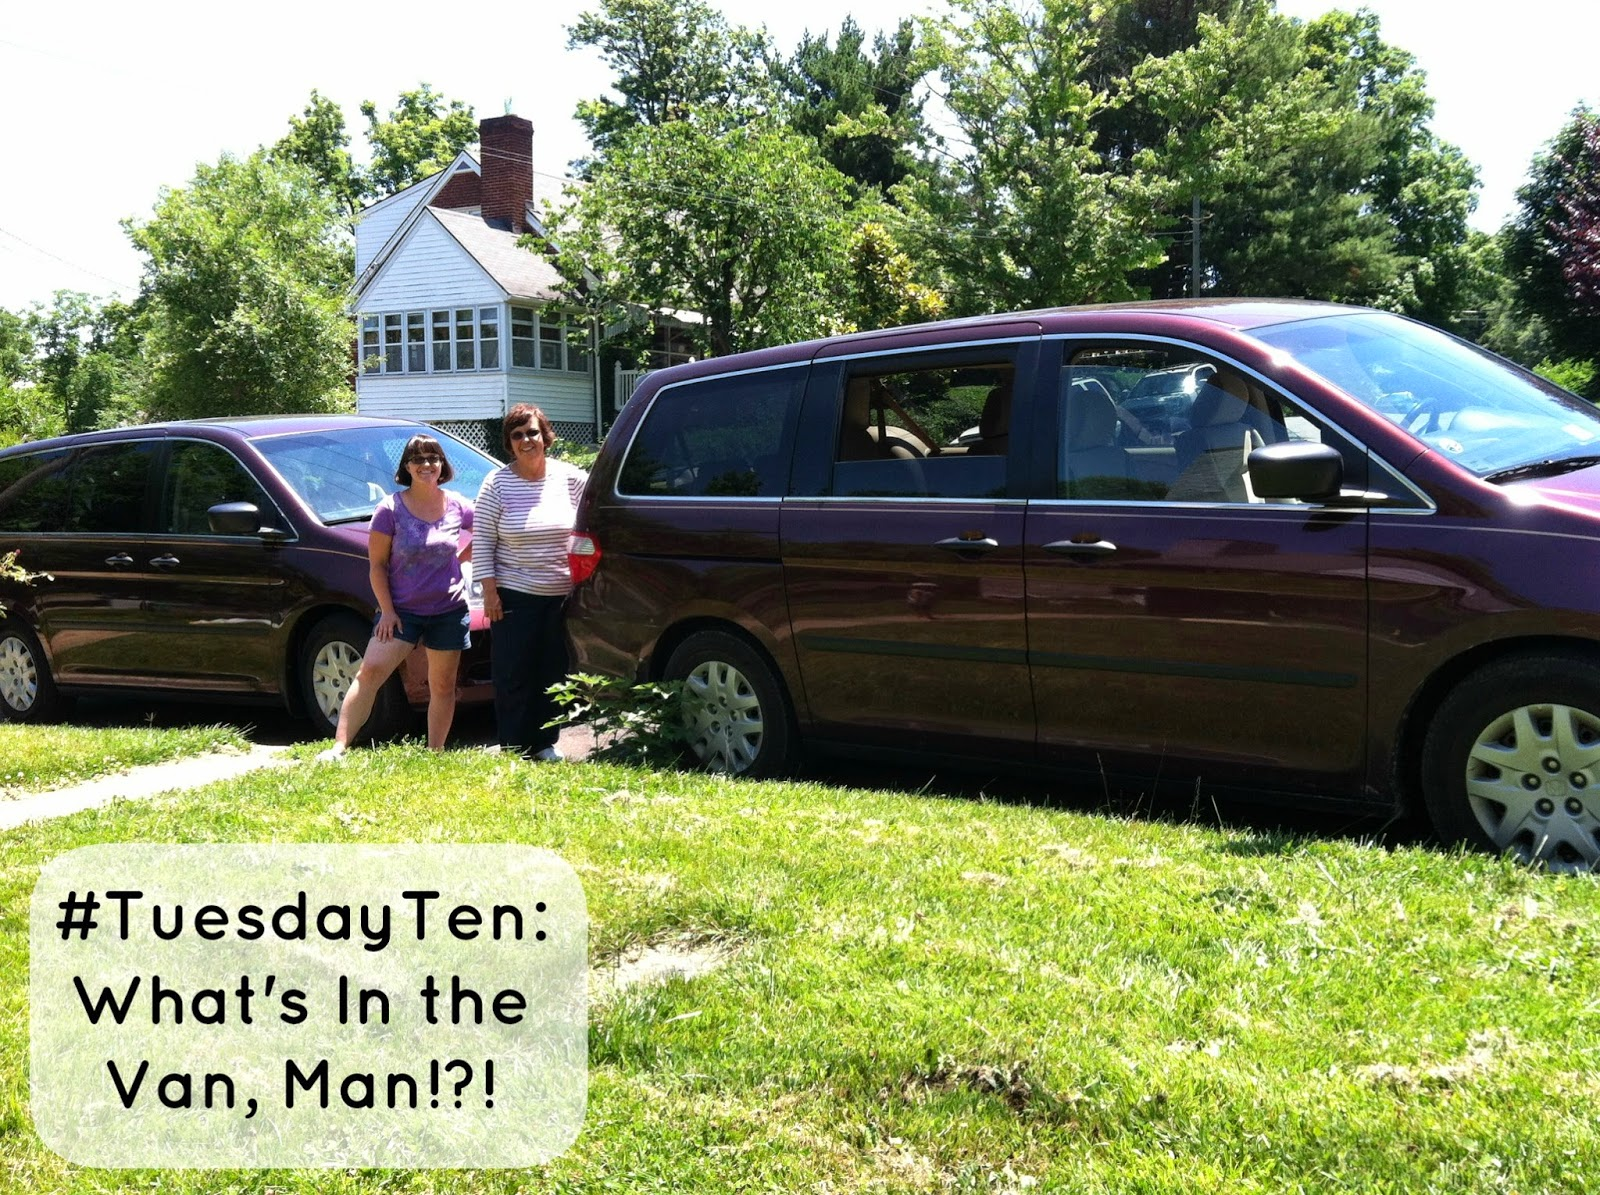 http://www.thelieberfamily.com/2014/04/tuesdayten-whats-in-my-van-man.html